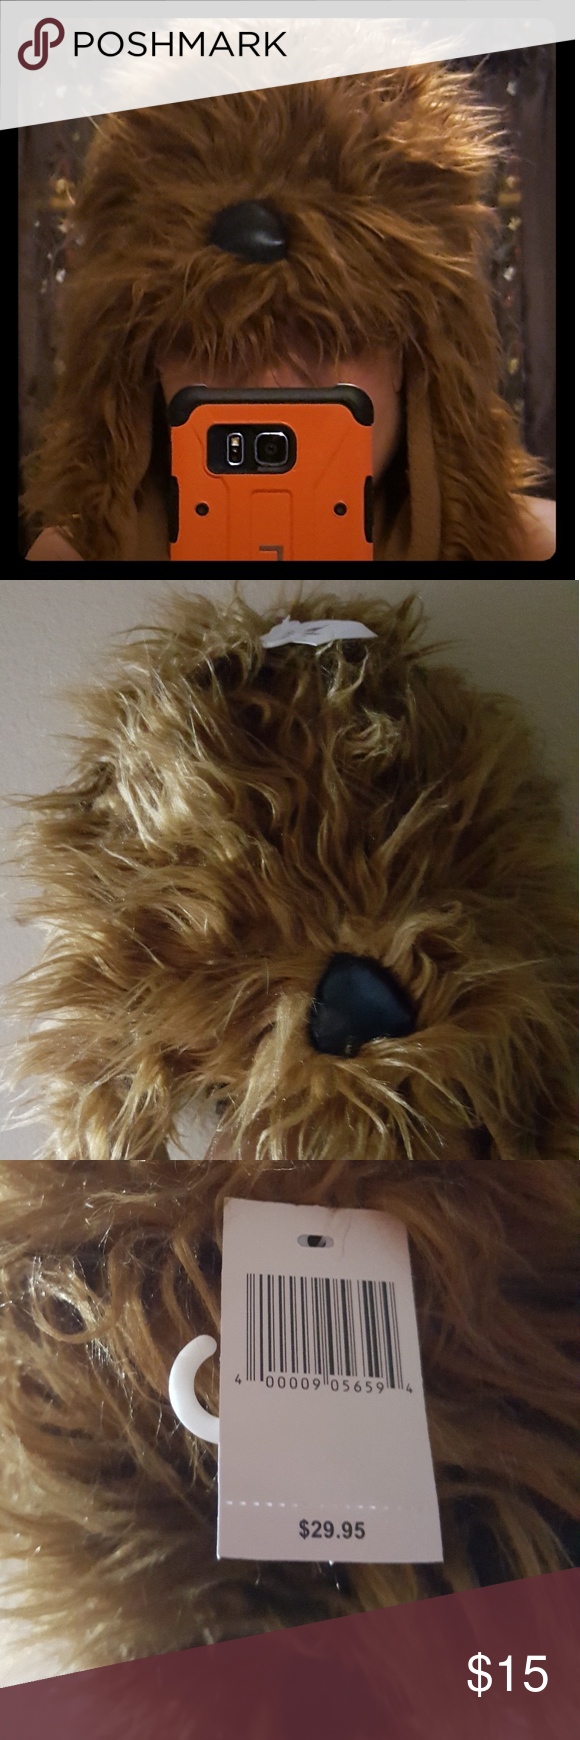 78ad36091bb ... clearance disney chewbacca hat brown furry cheewbacca hat with long  ears. purchased at disneyland and